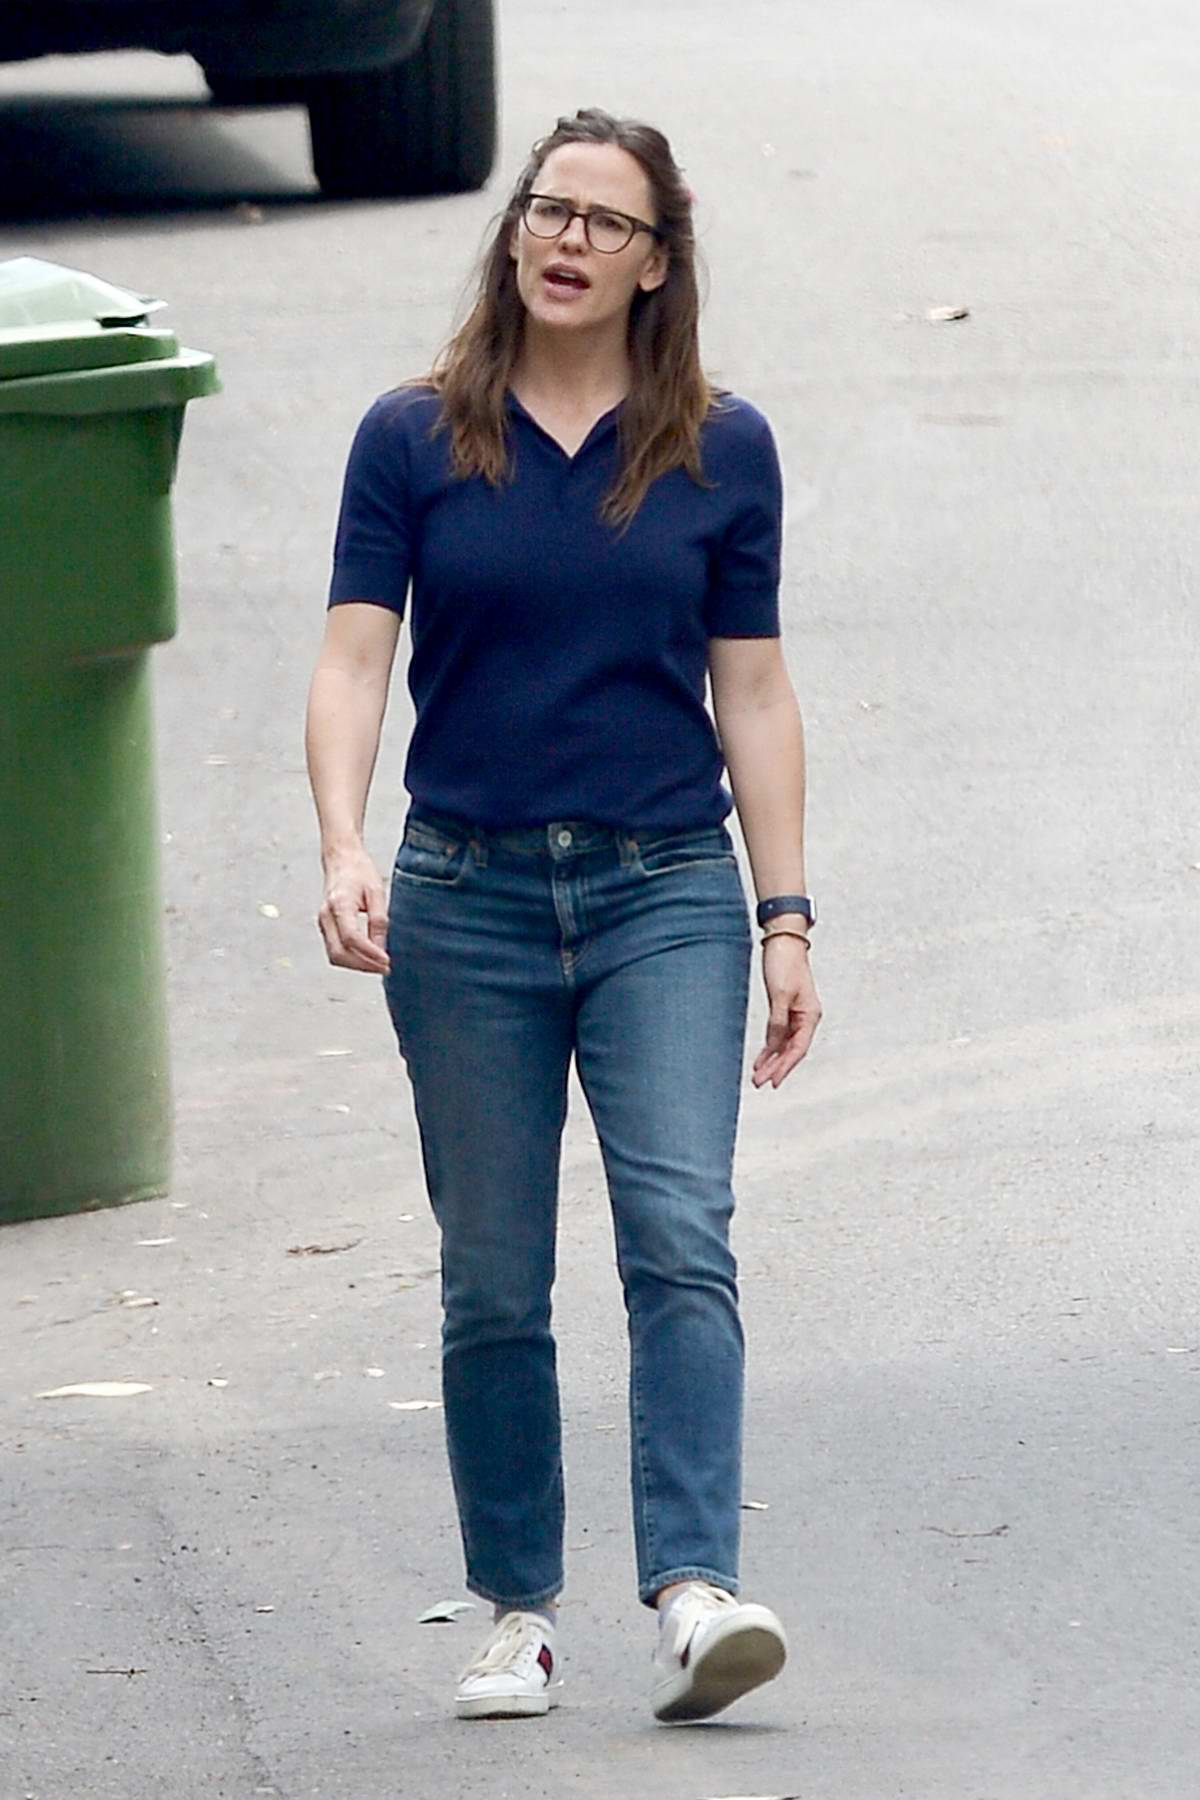 Jennifer Garner wears a dark blue polo shirt and jeans while out for walk in Los Angeles